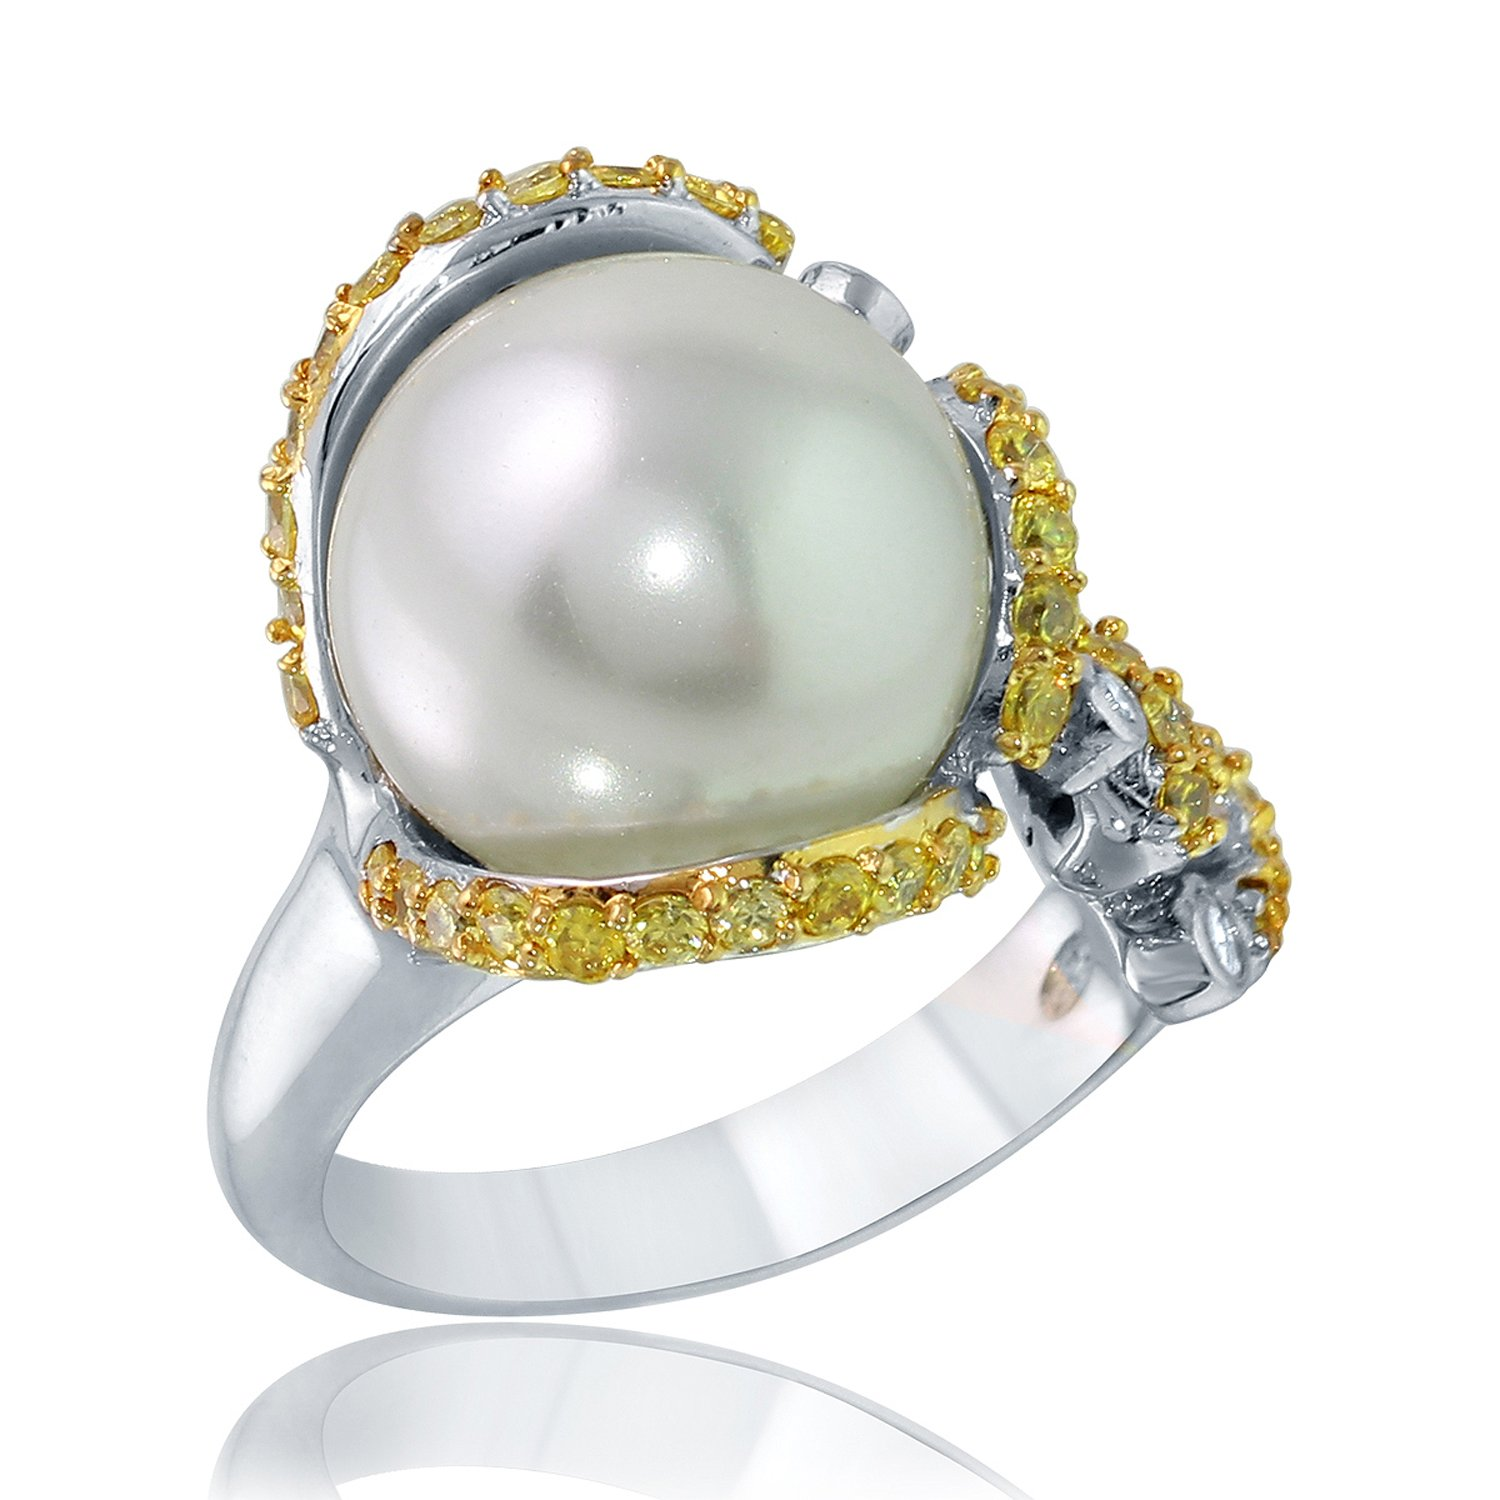 Rhodium Plate and Gold Plate Silver Glass Simulated Pearl Cz Ring-8